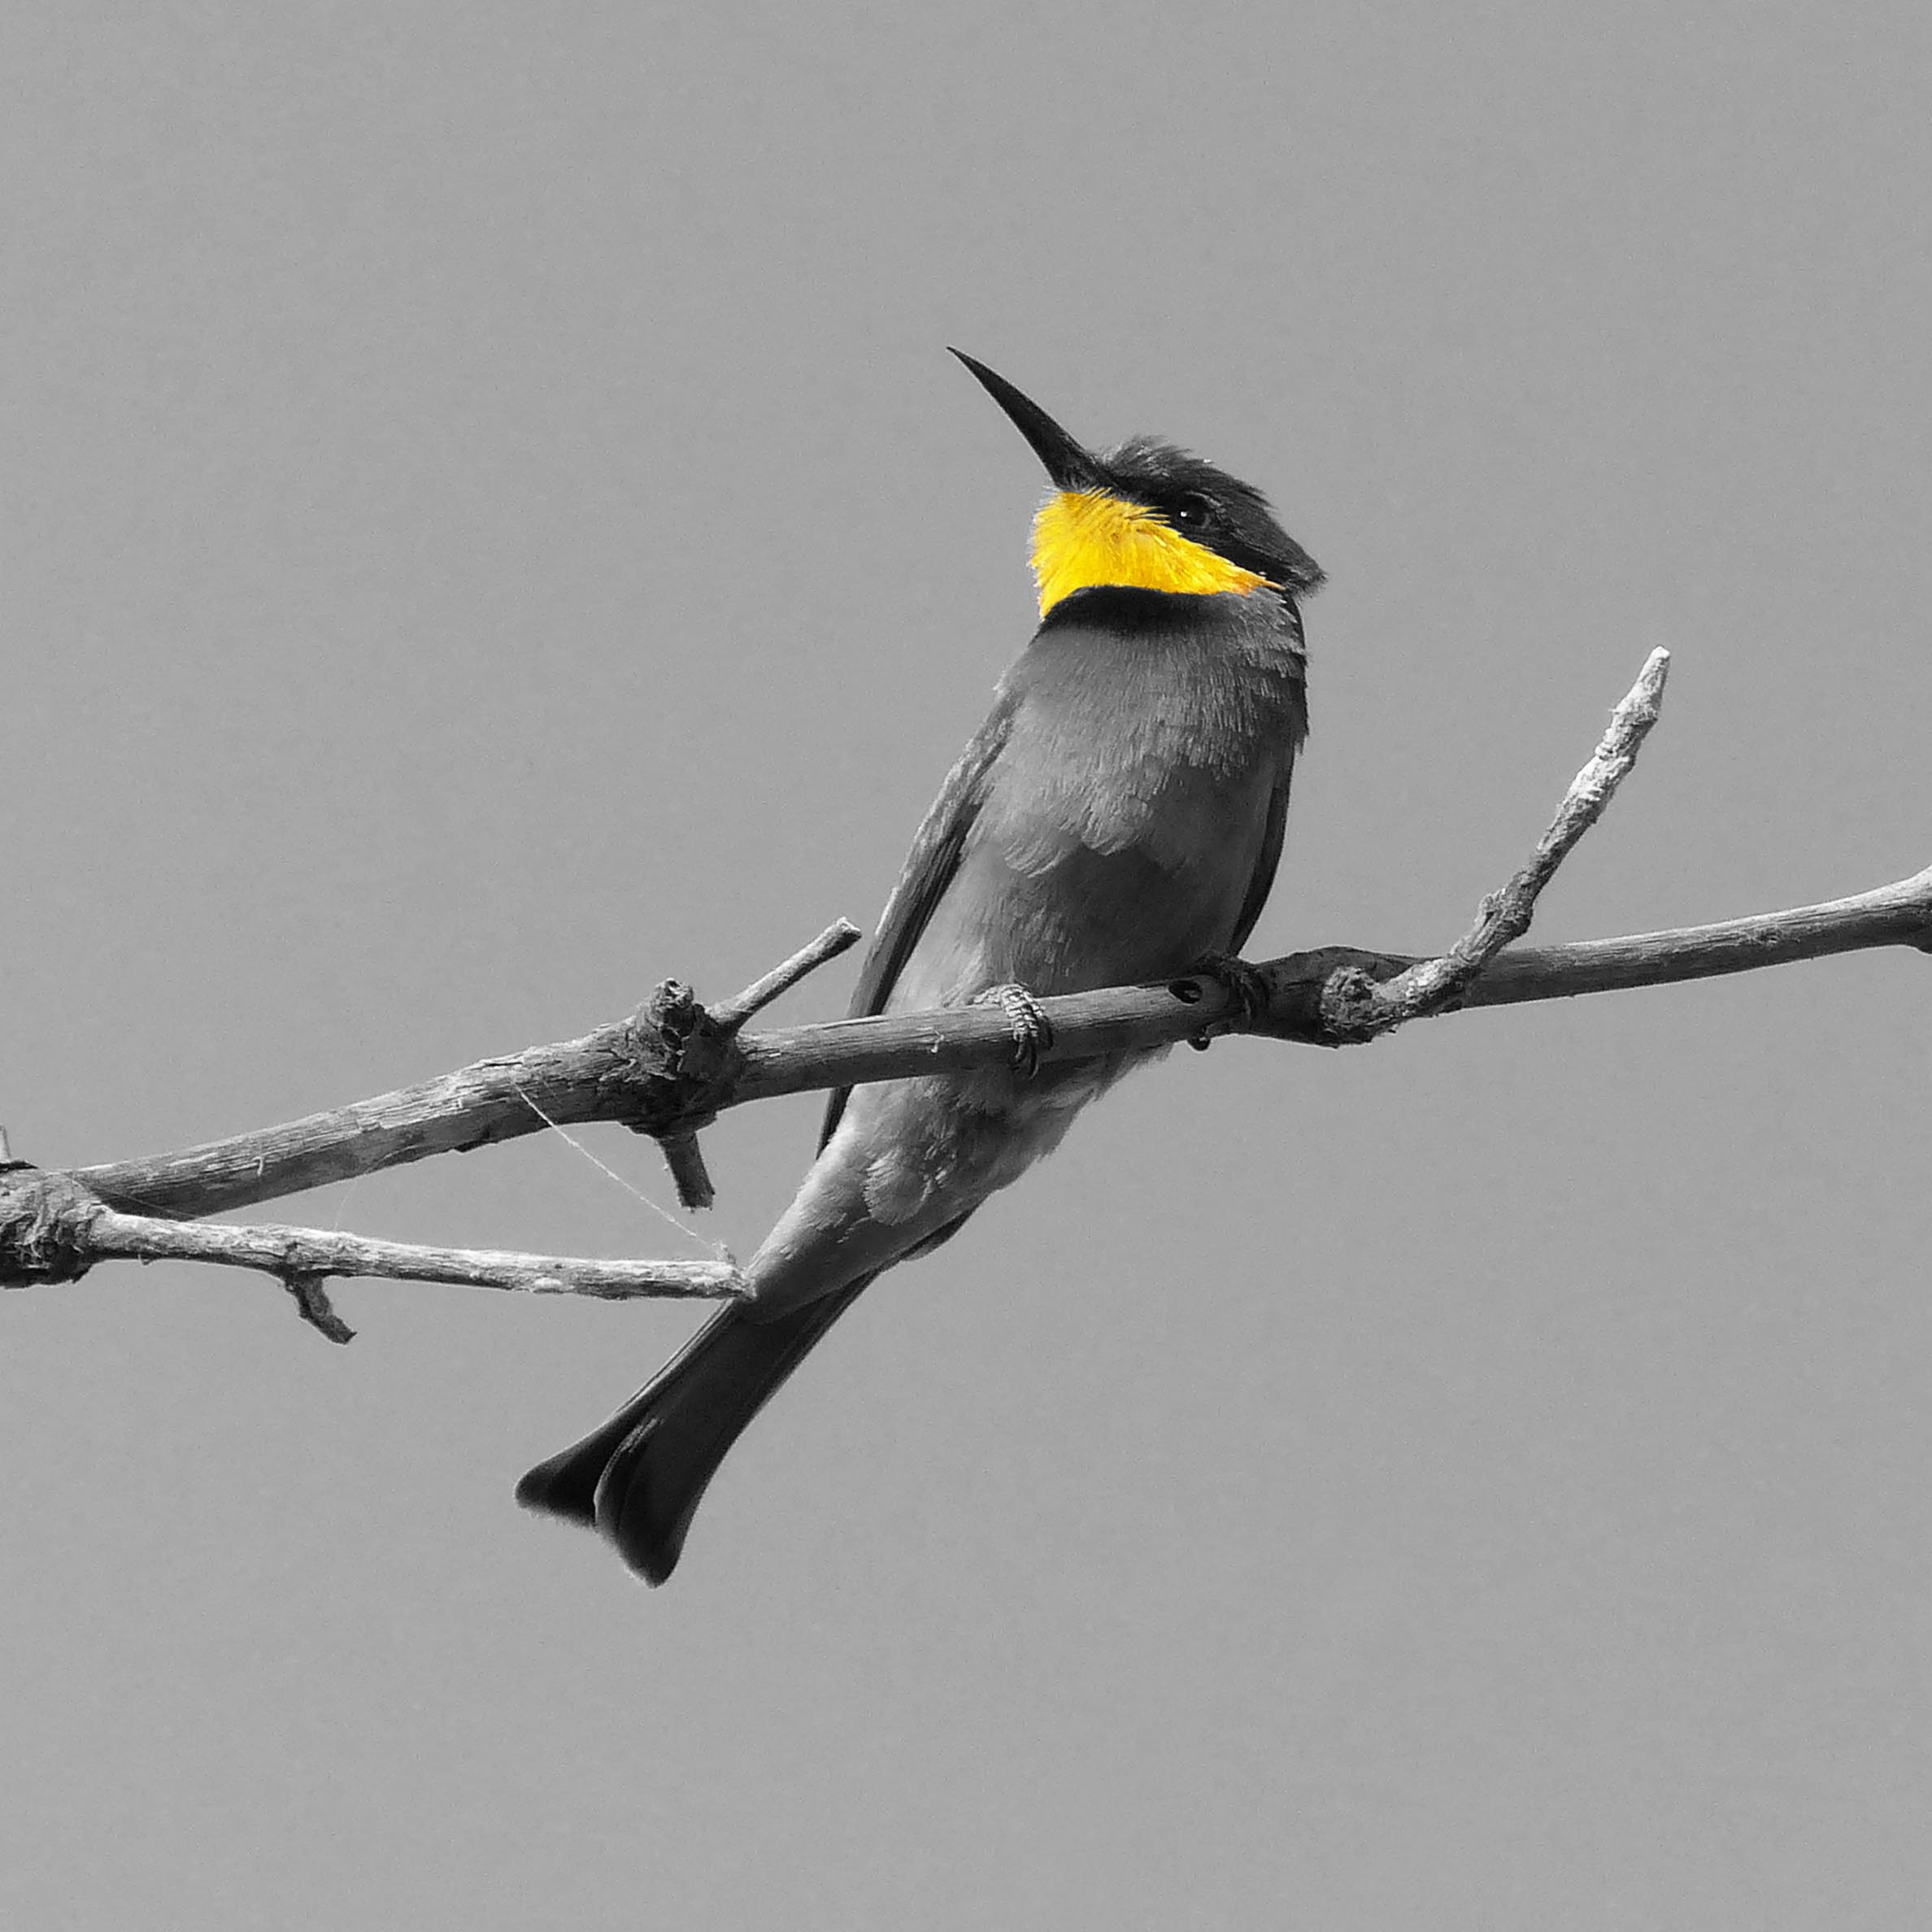 Bird on a branch, black and white apart from yellow throat